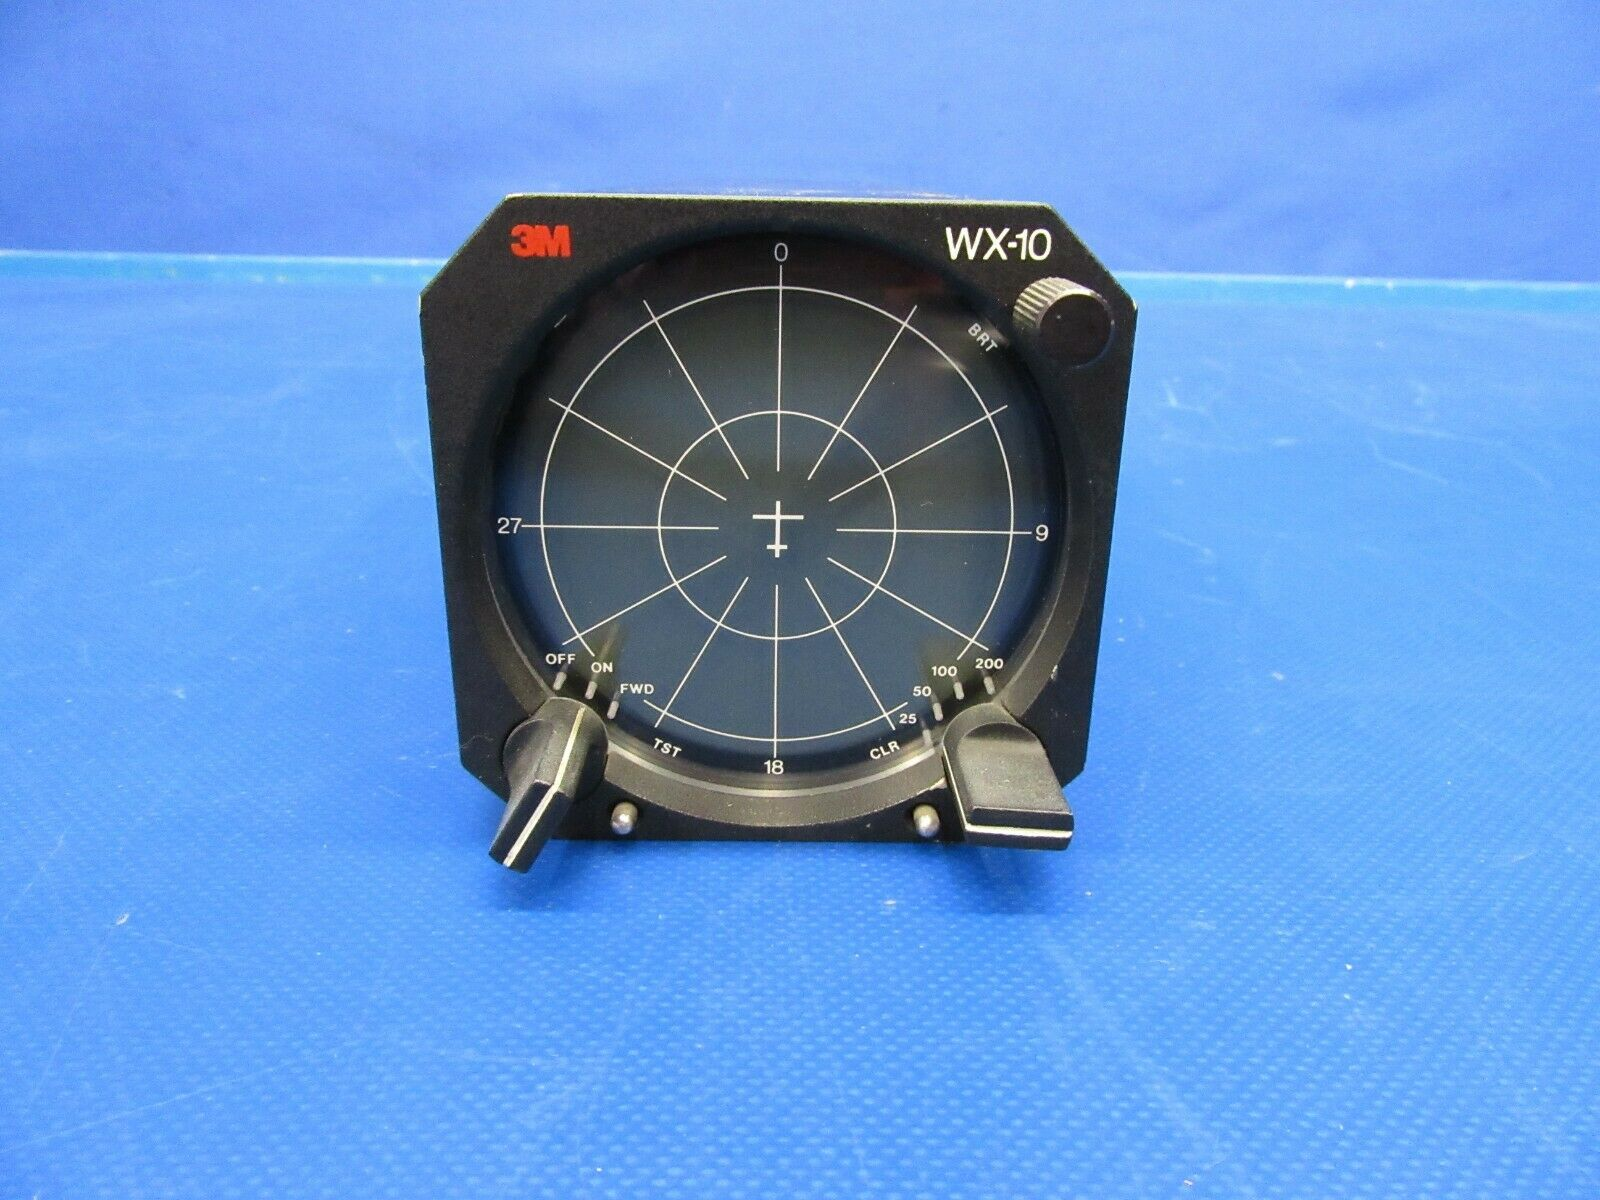 3M Stormscope WX-10 Display P/N 280D40 (0419-355)